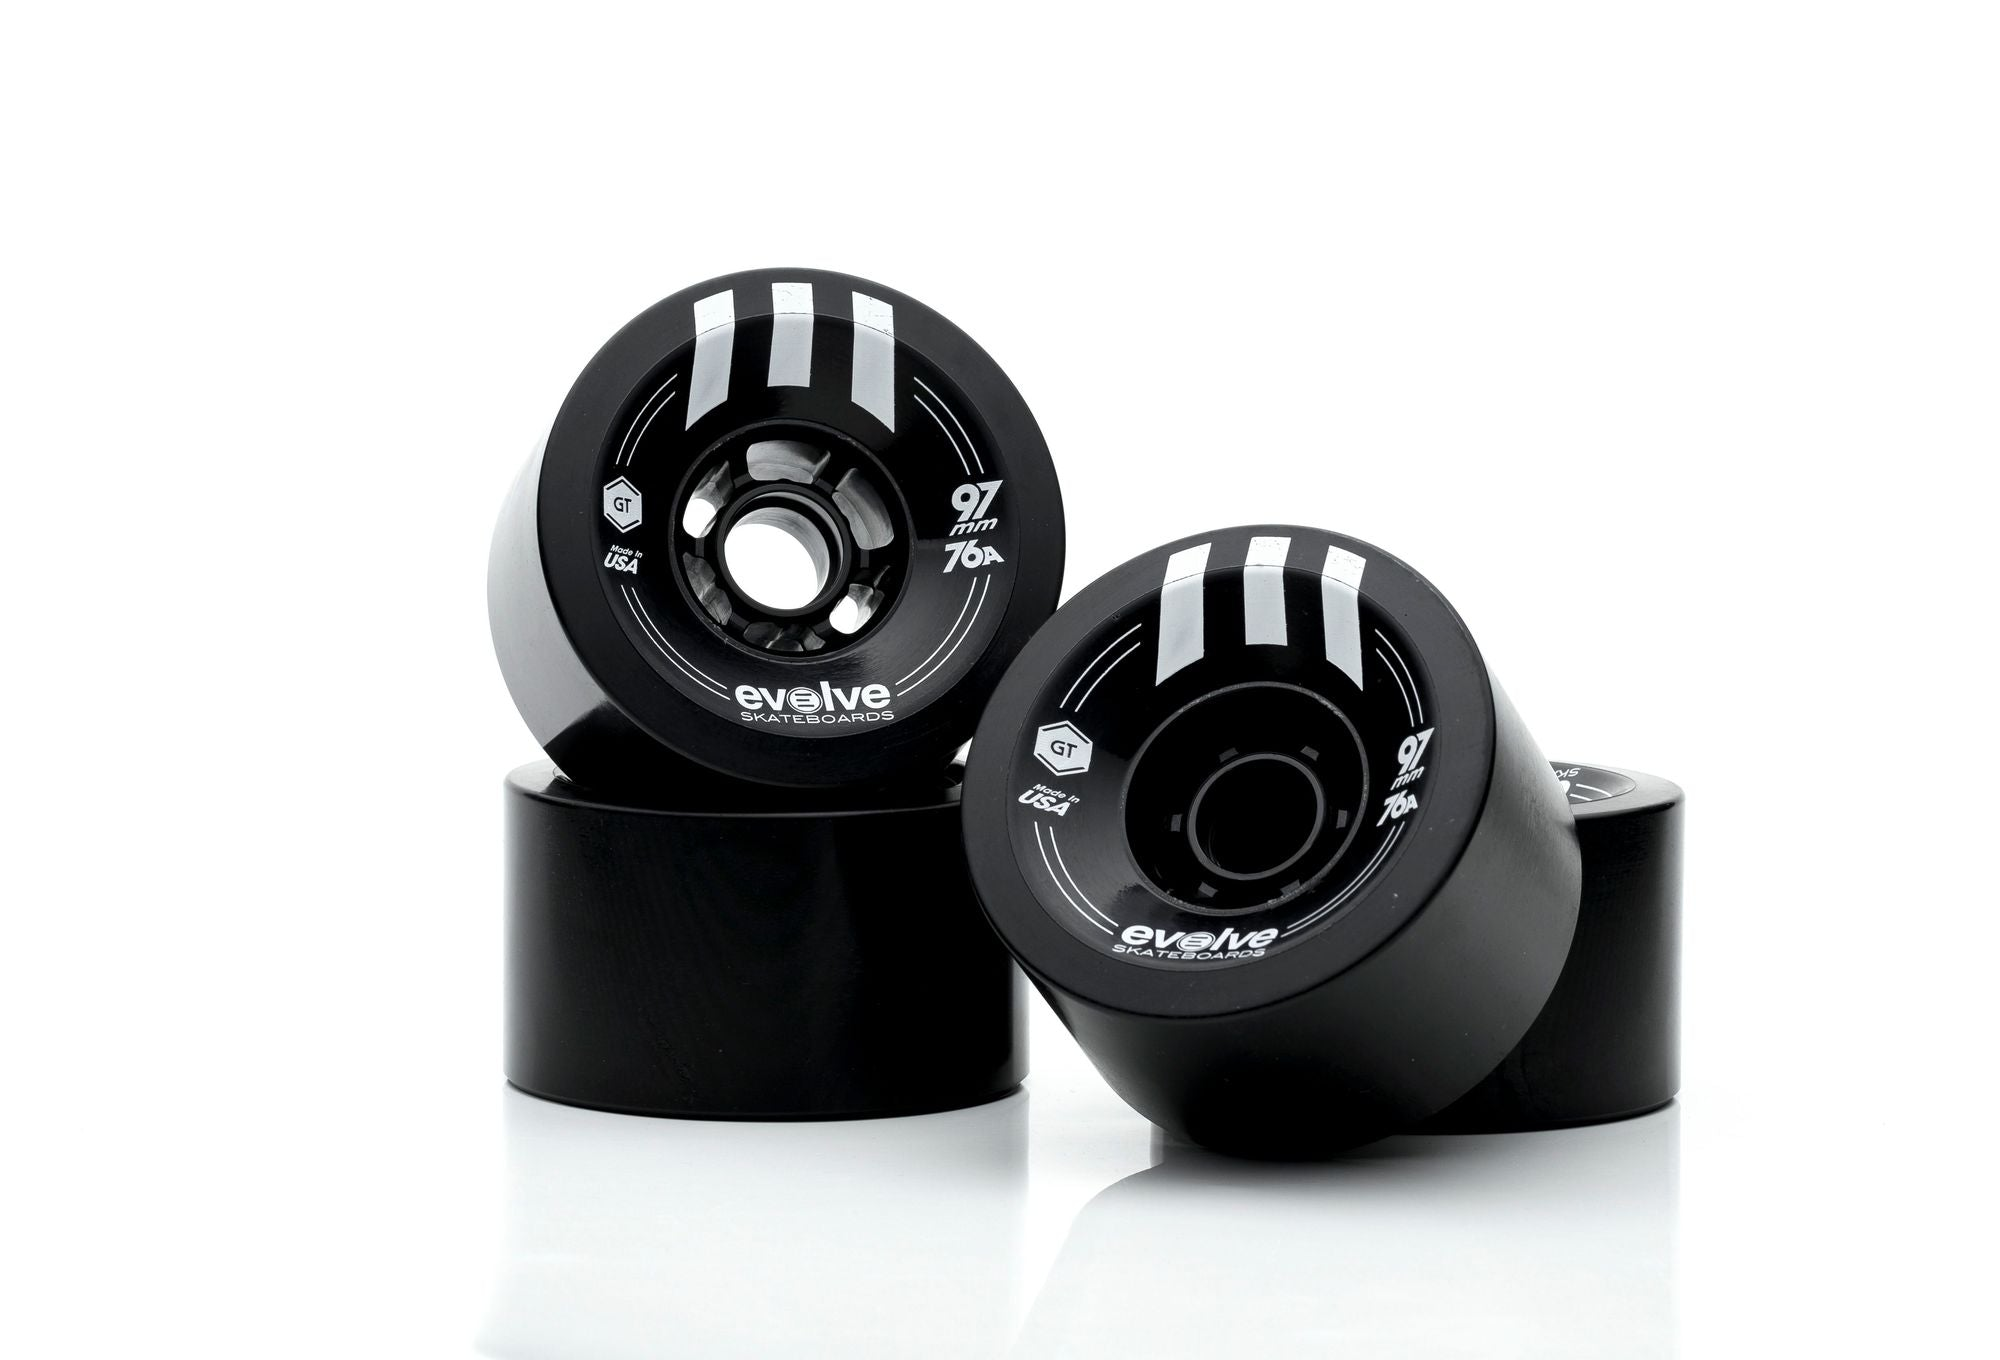 Evolve GTR Street Wheels (97mm, 76a)